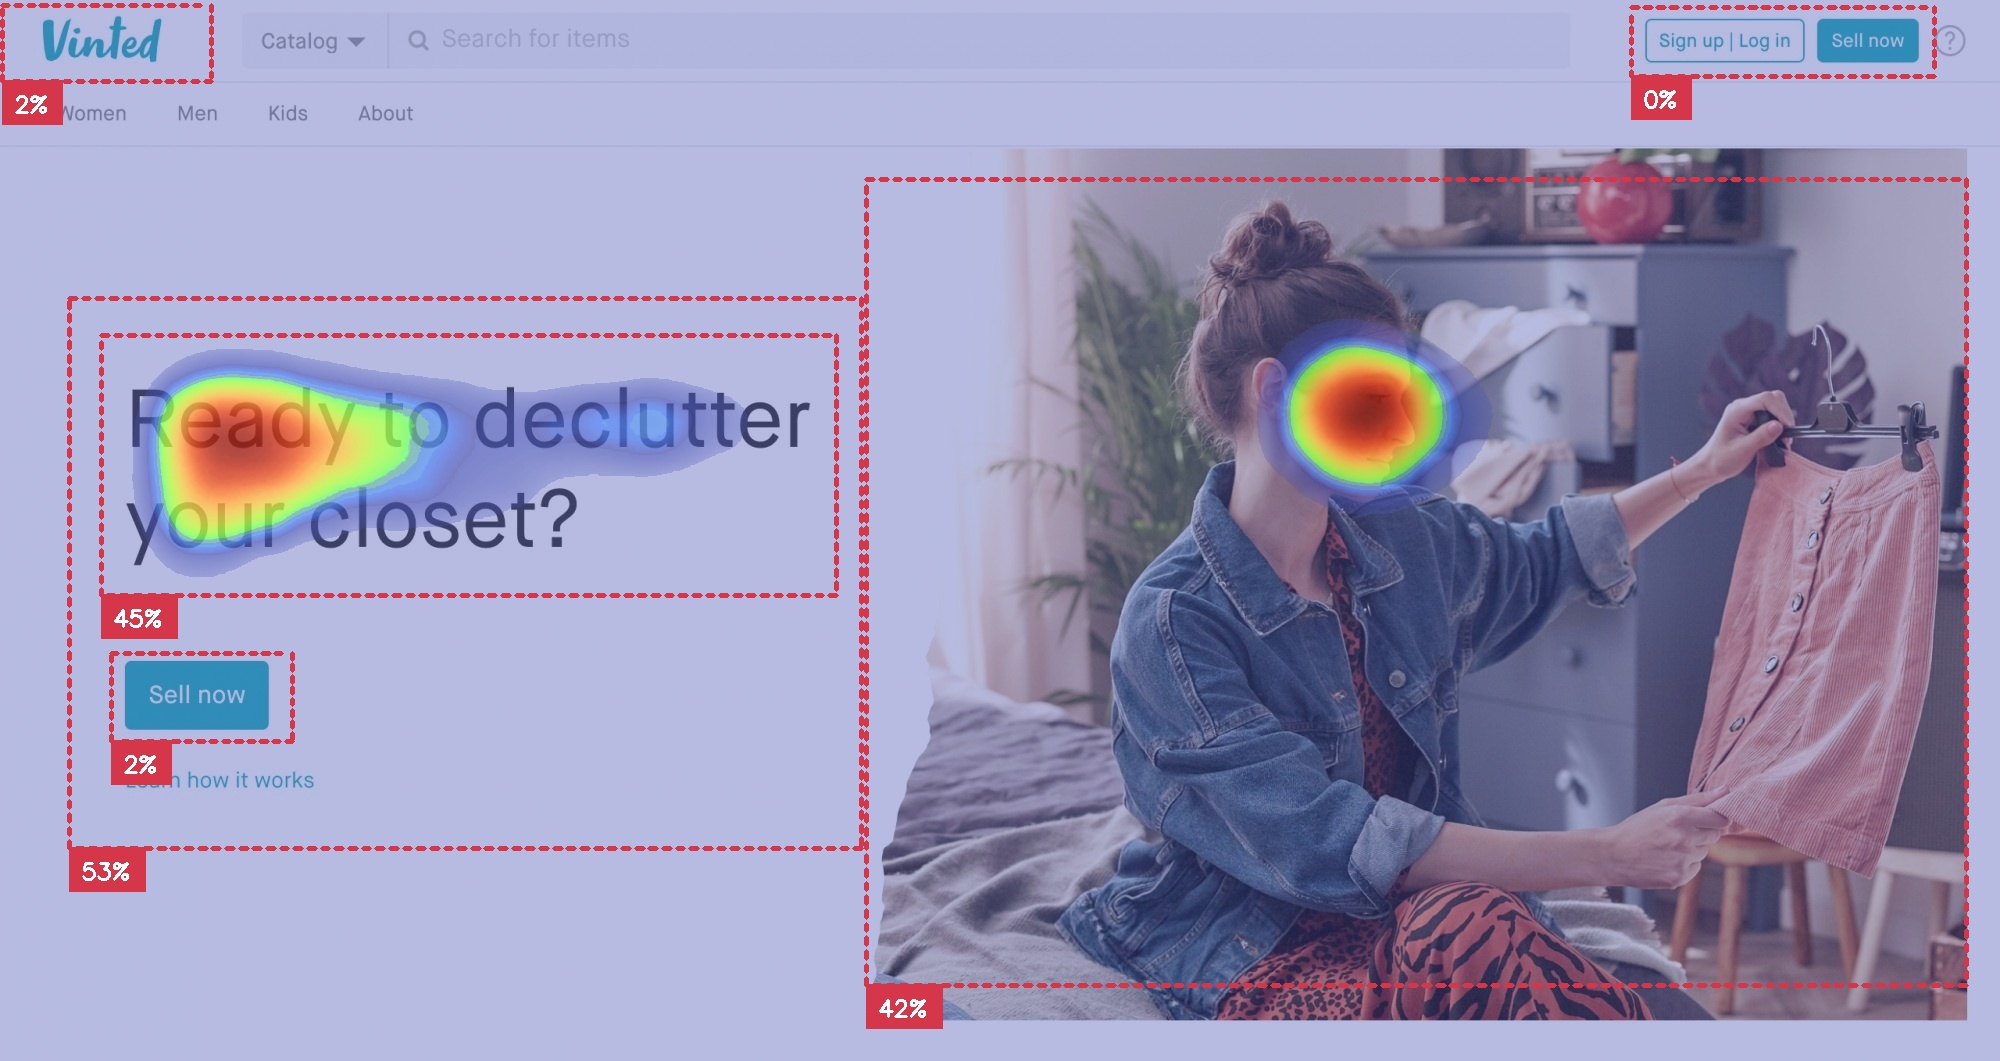 Vinted landing page with Attention Insight heatmap